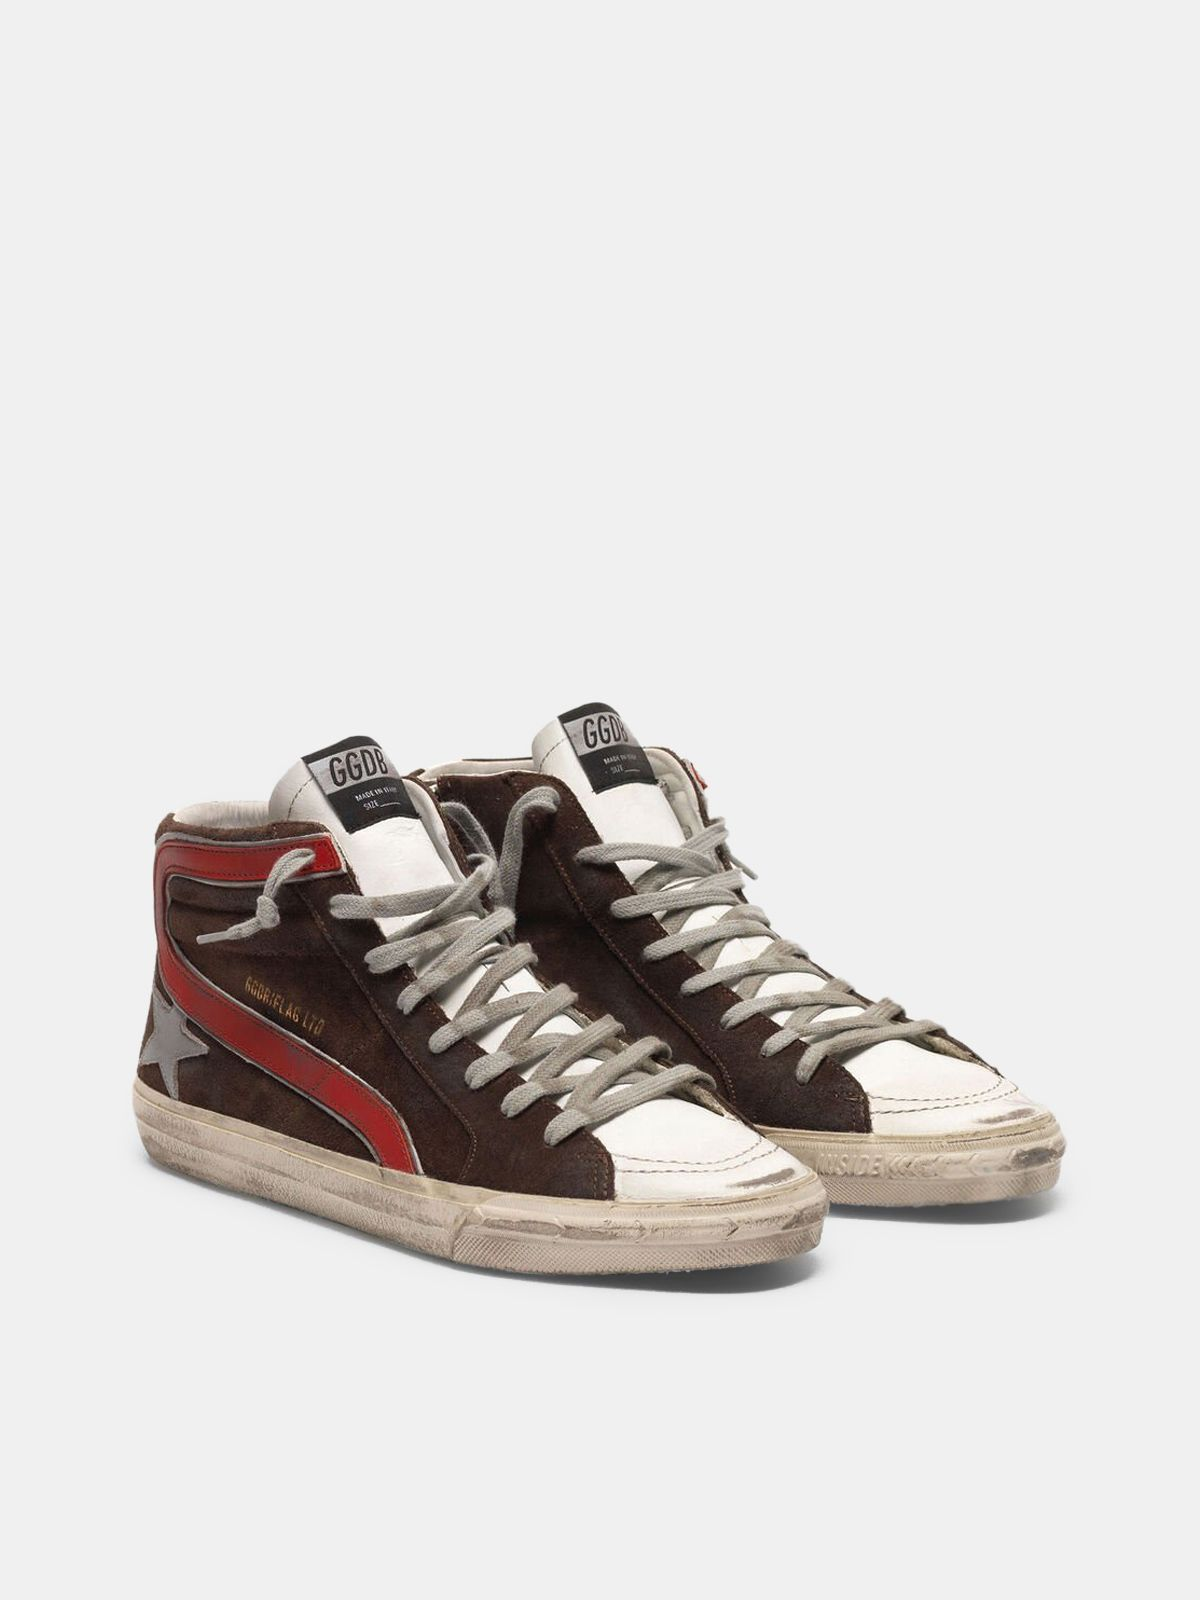 Golden Goose - Slide sneakers in suede with silver star in